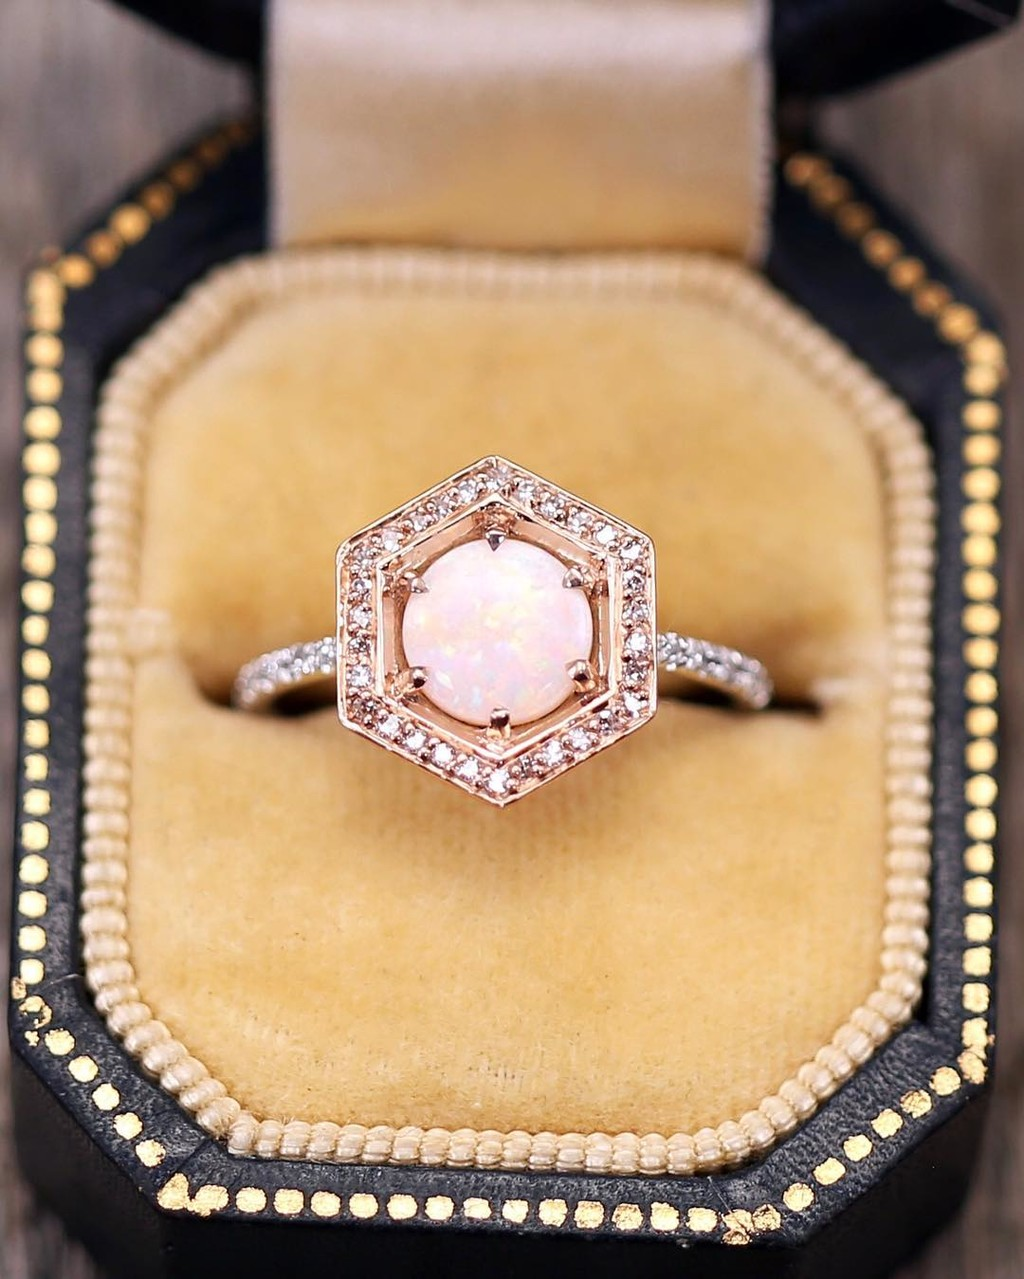 7mm Australian Opal + Rose Gold Hexagon Halo + White Good Band = the loveliest unique low profile ring 💫✨